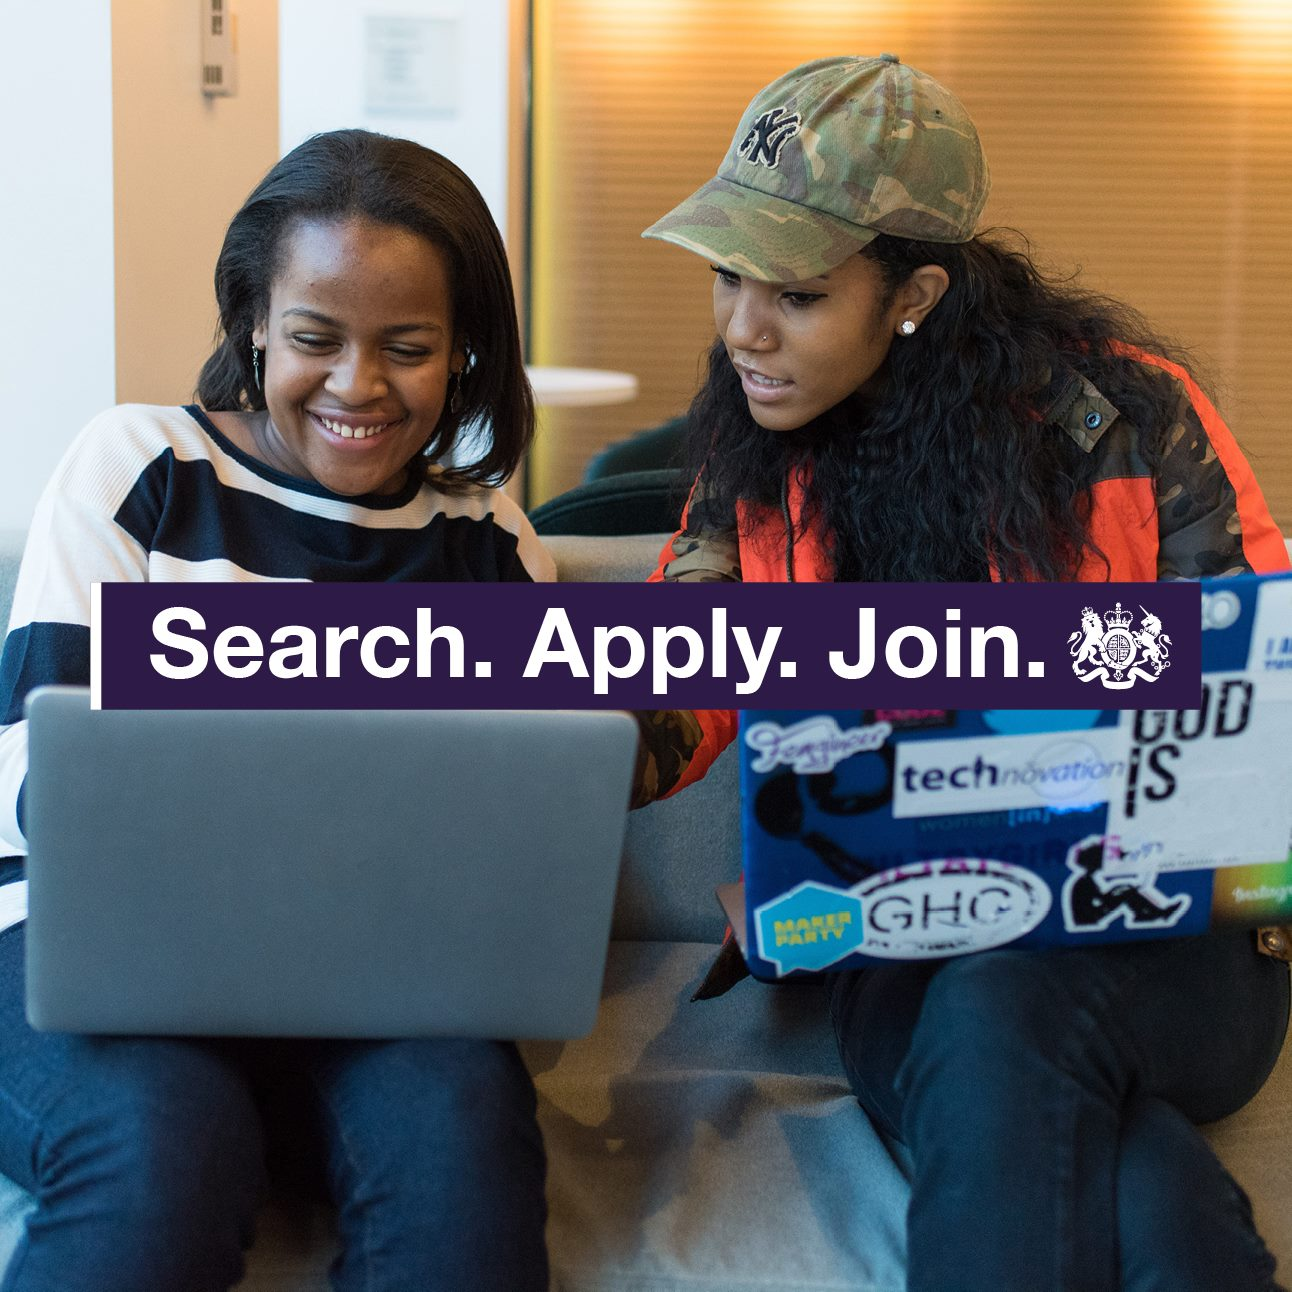 Search. Apply. Join.